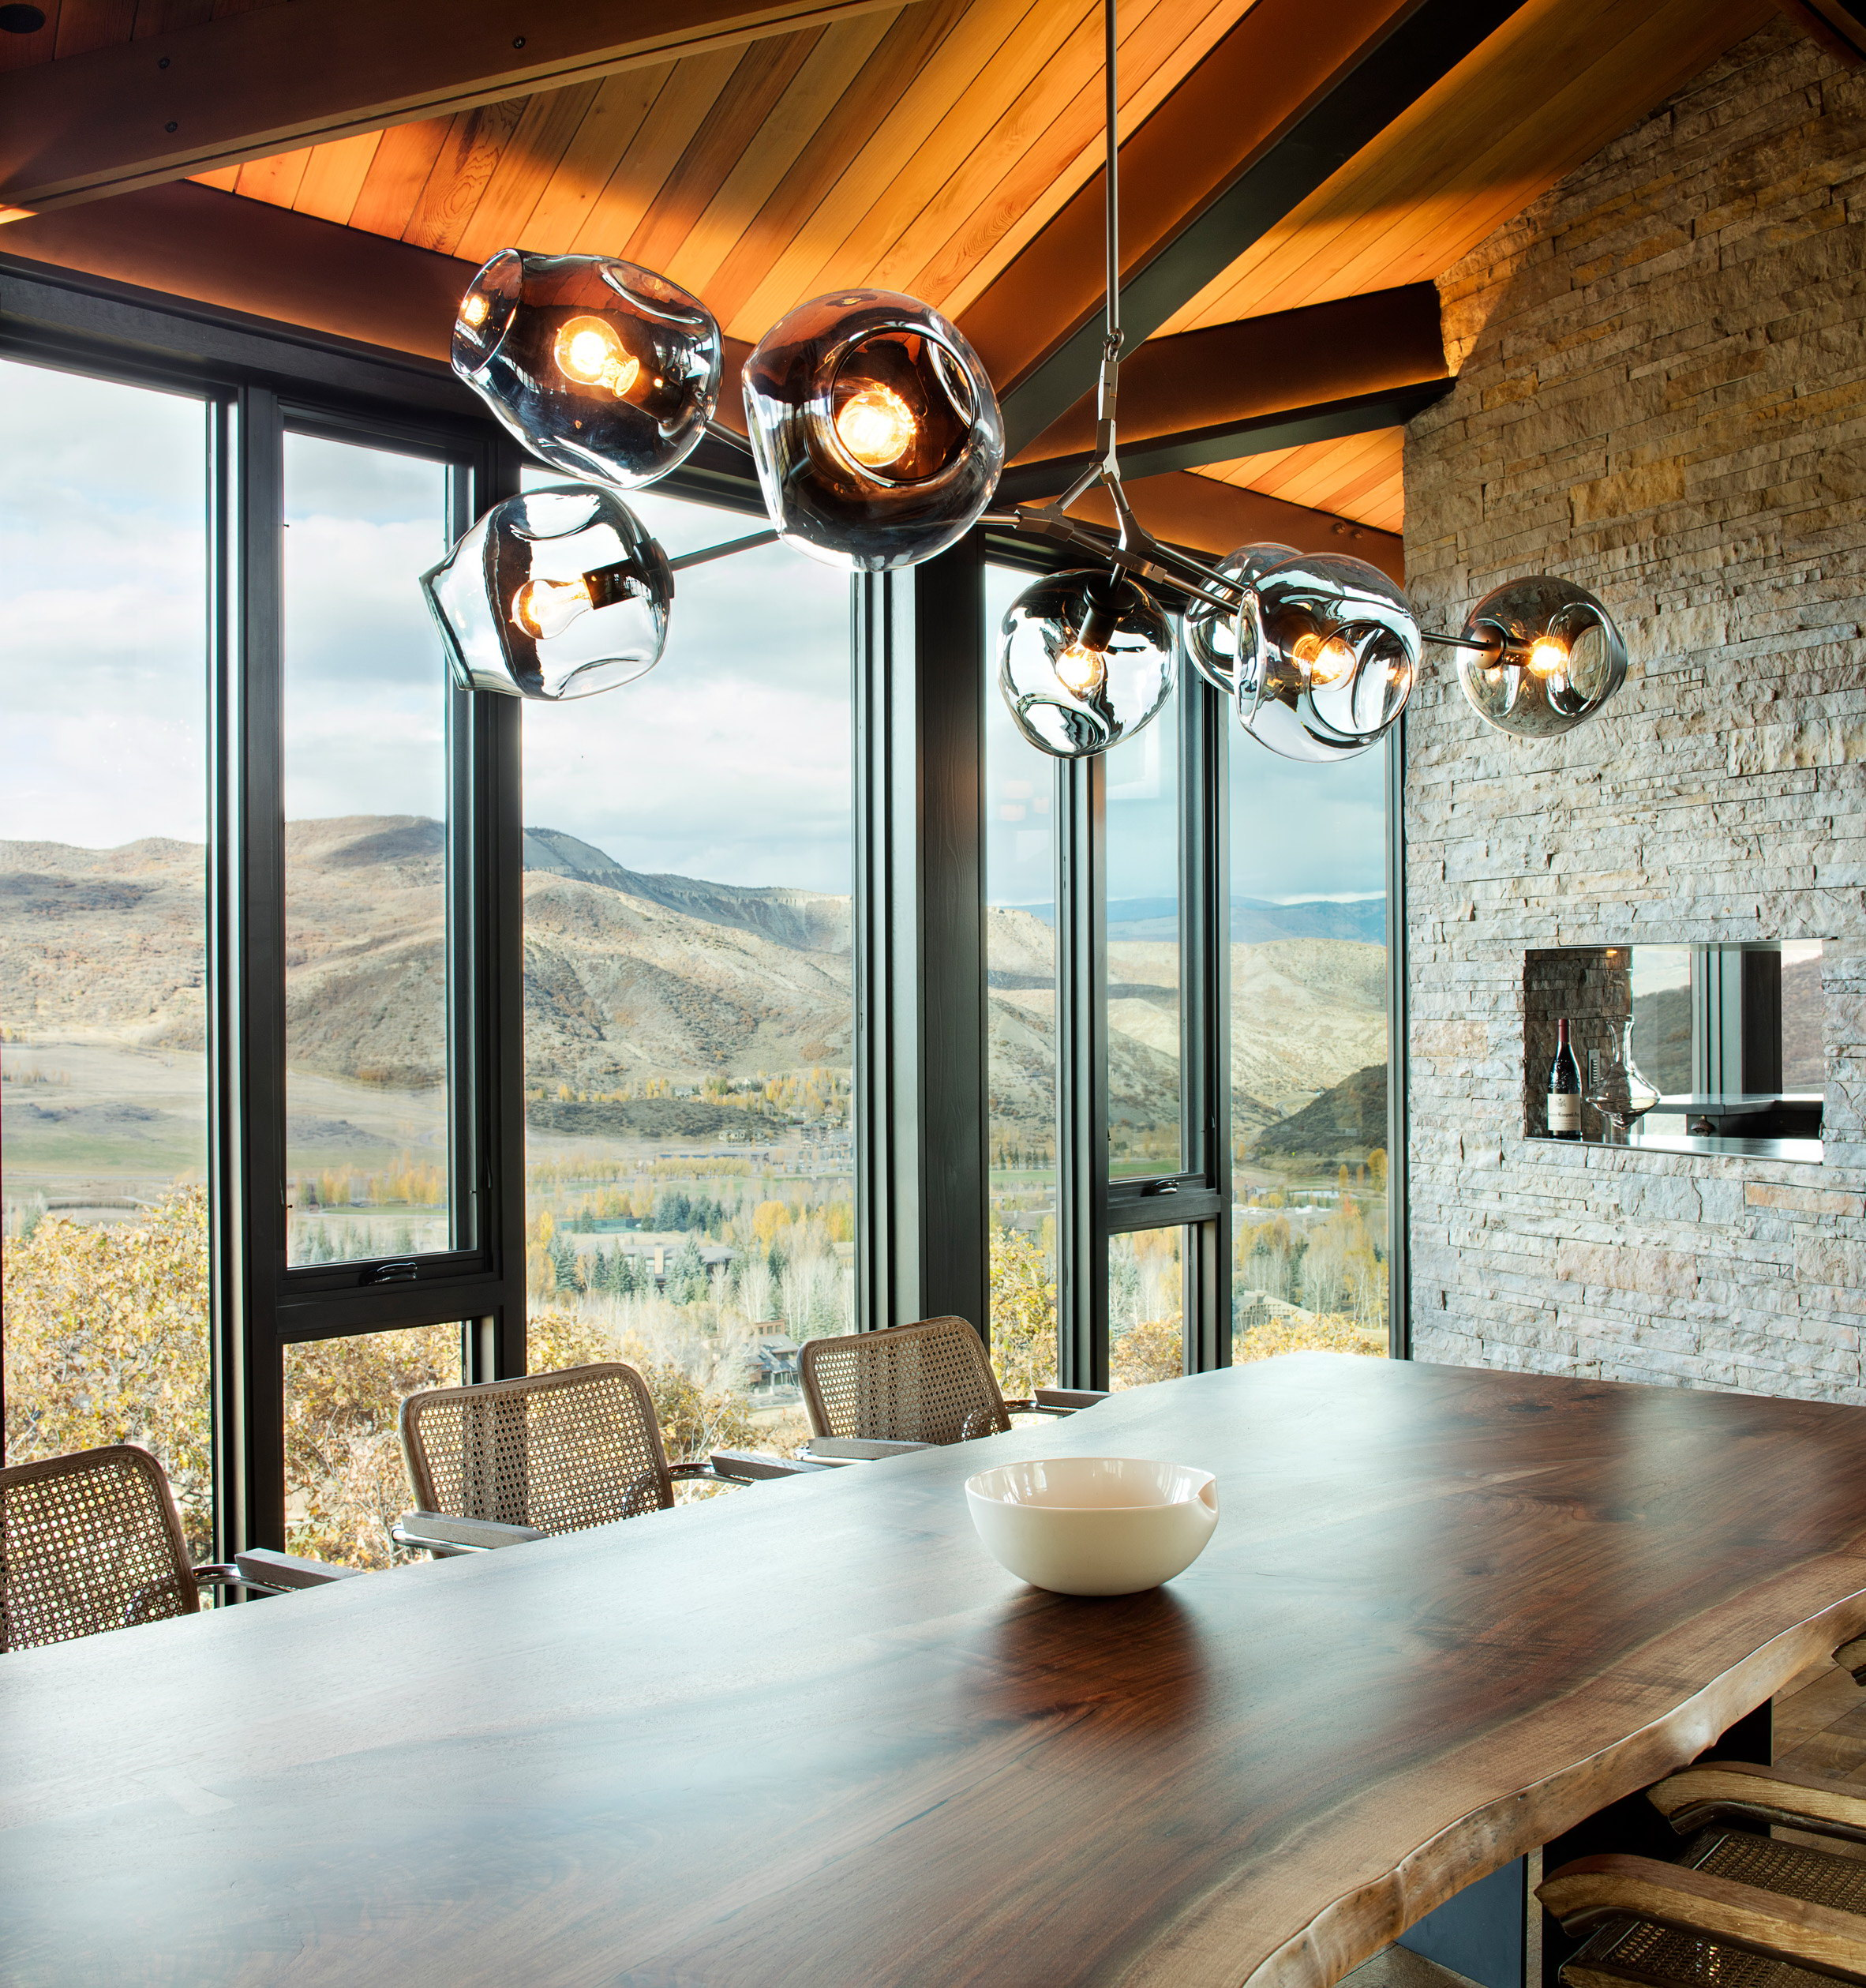 Owl Creek Residence by Skylab Architecture